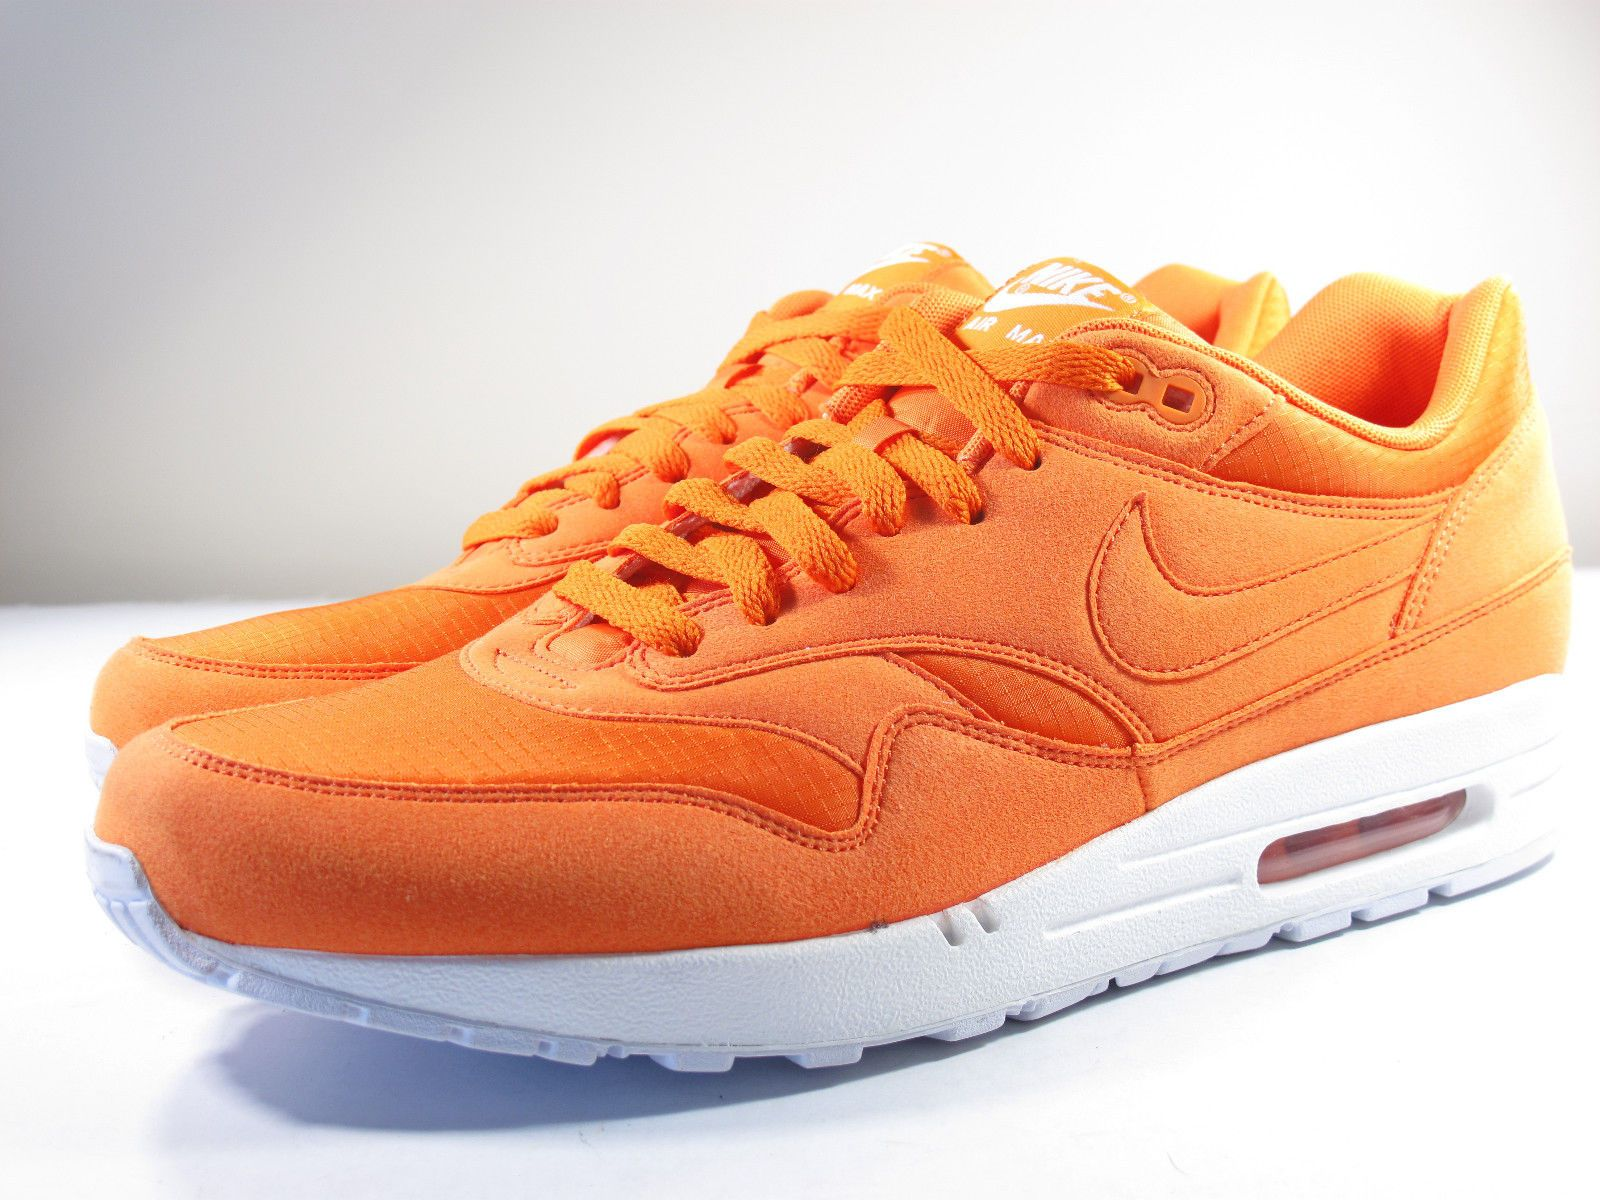 NIKE AIR MAX 1 MANDARIN TOTAL ORANGE WHITE 308866 808 $135